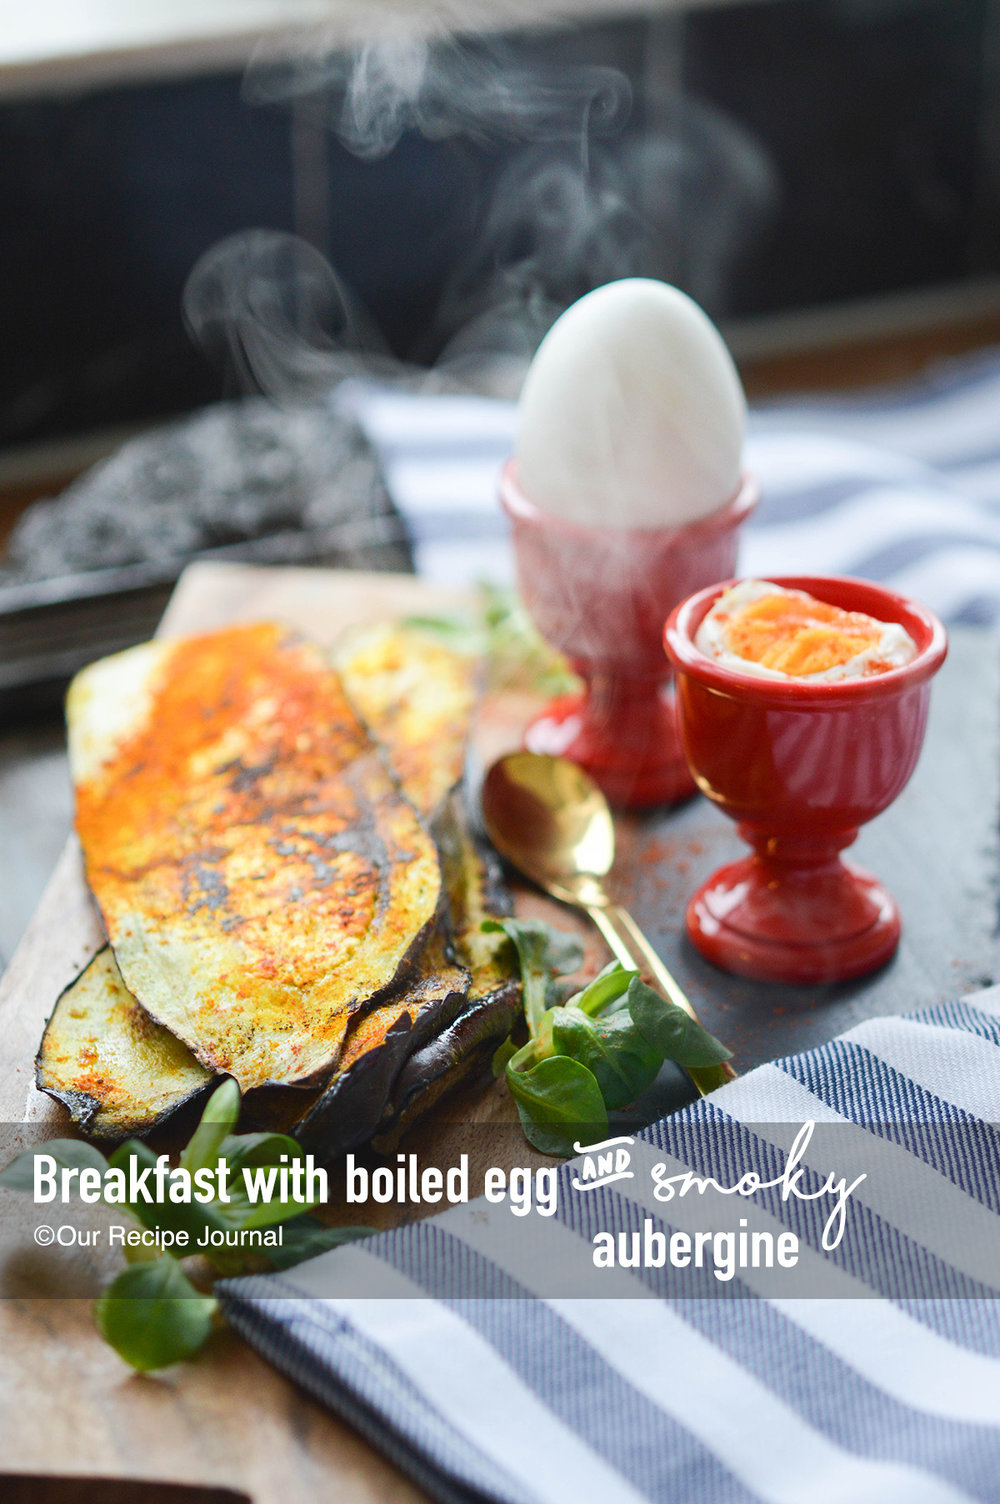 Breakfast with smoky aubergine and boiled egg